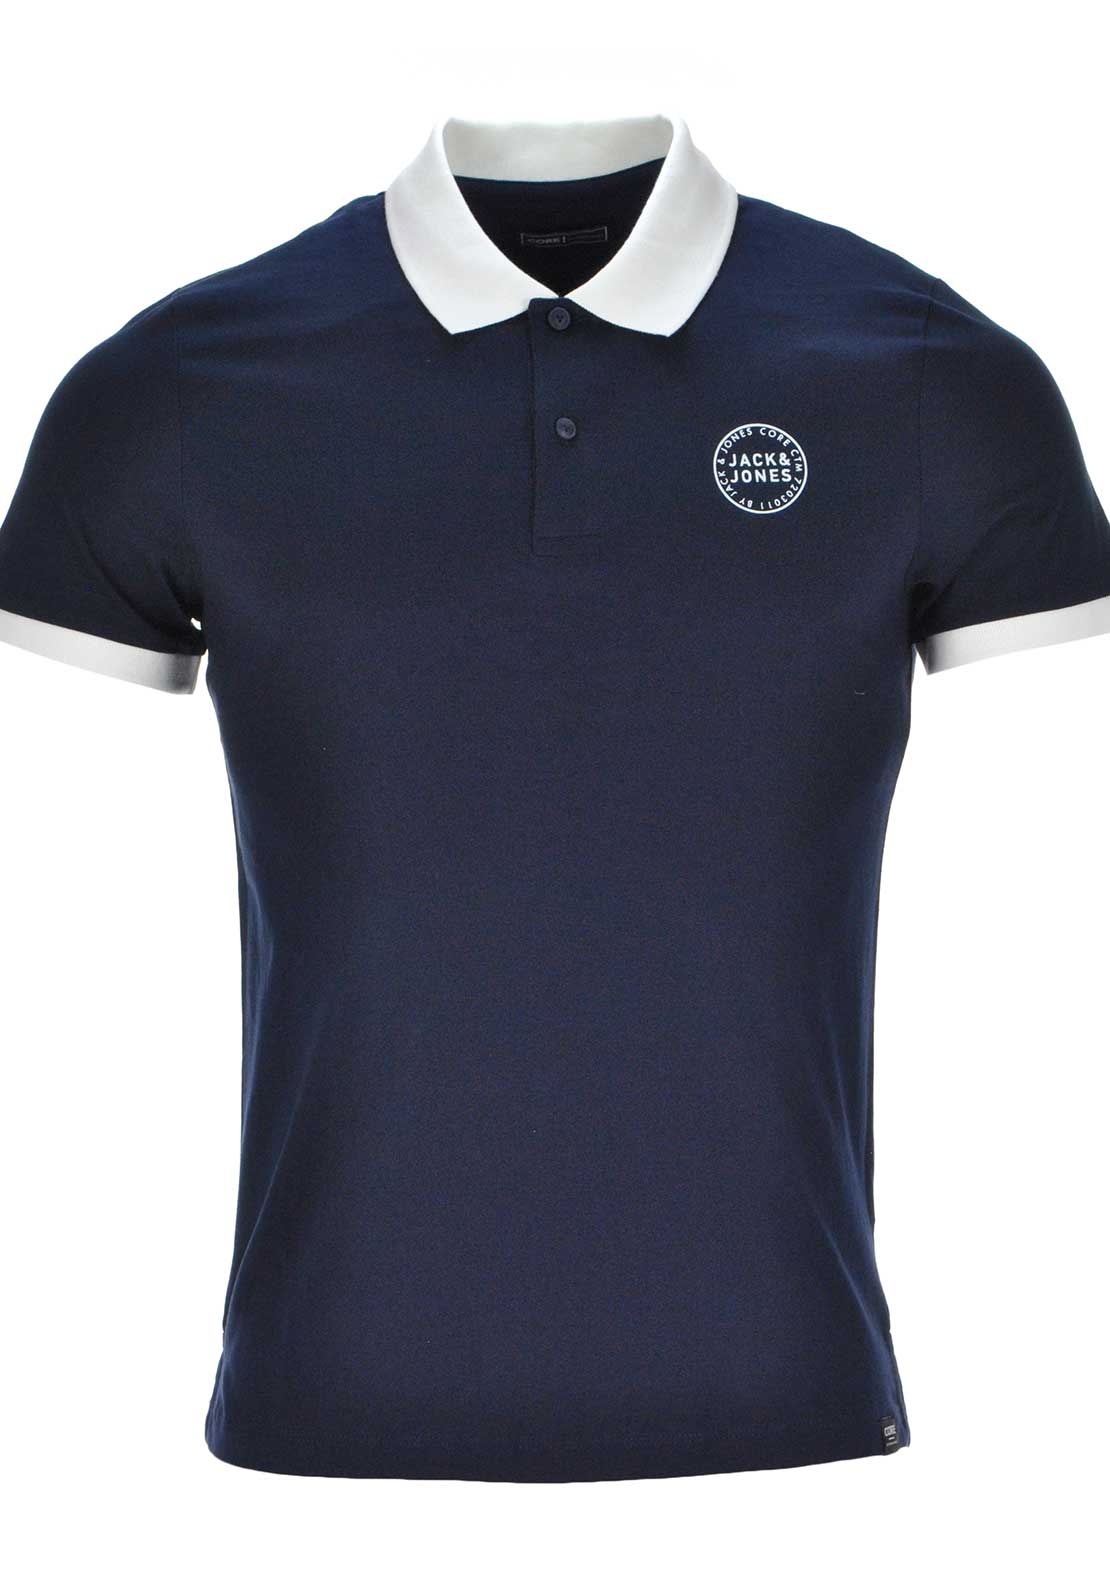 Jack & Jones Core Sure Short Sleeve Polo Shirt, Navy Blazer